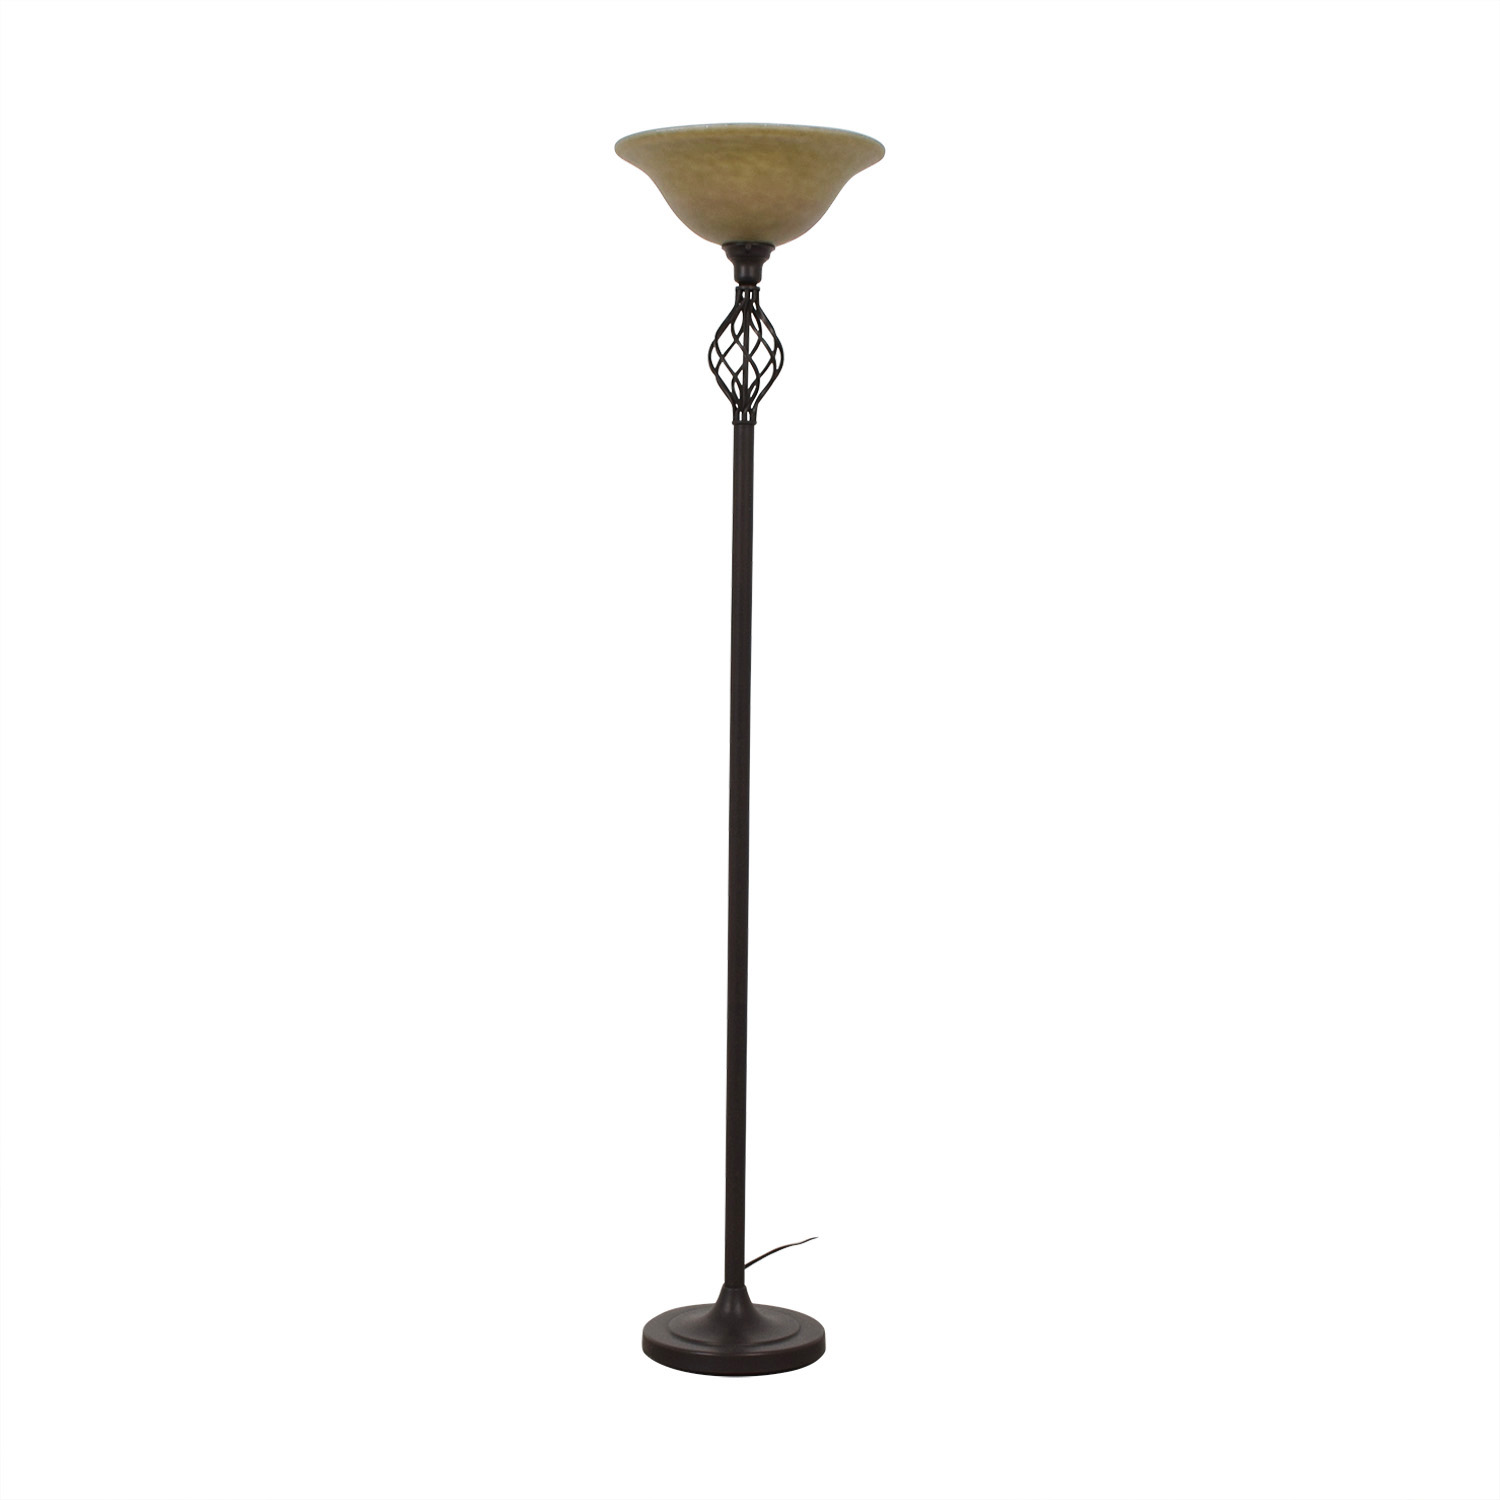 Bed Bath & Beyond Halogen Floor Lamp / Lamps